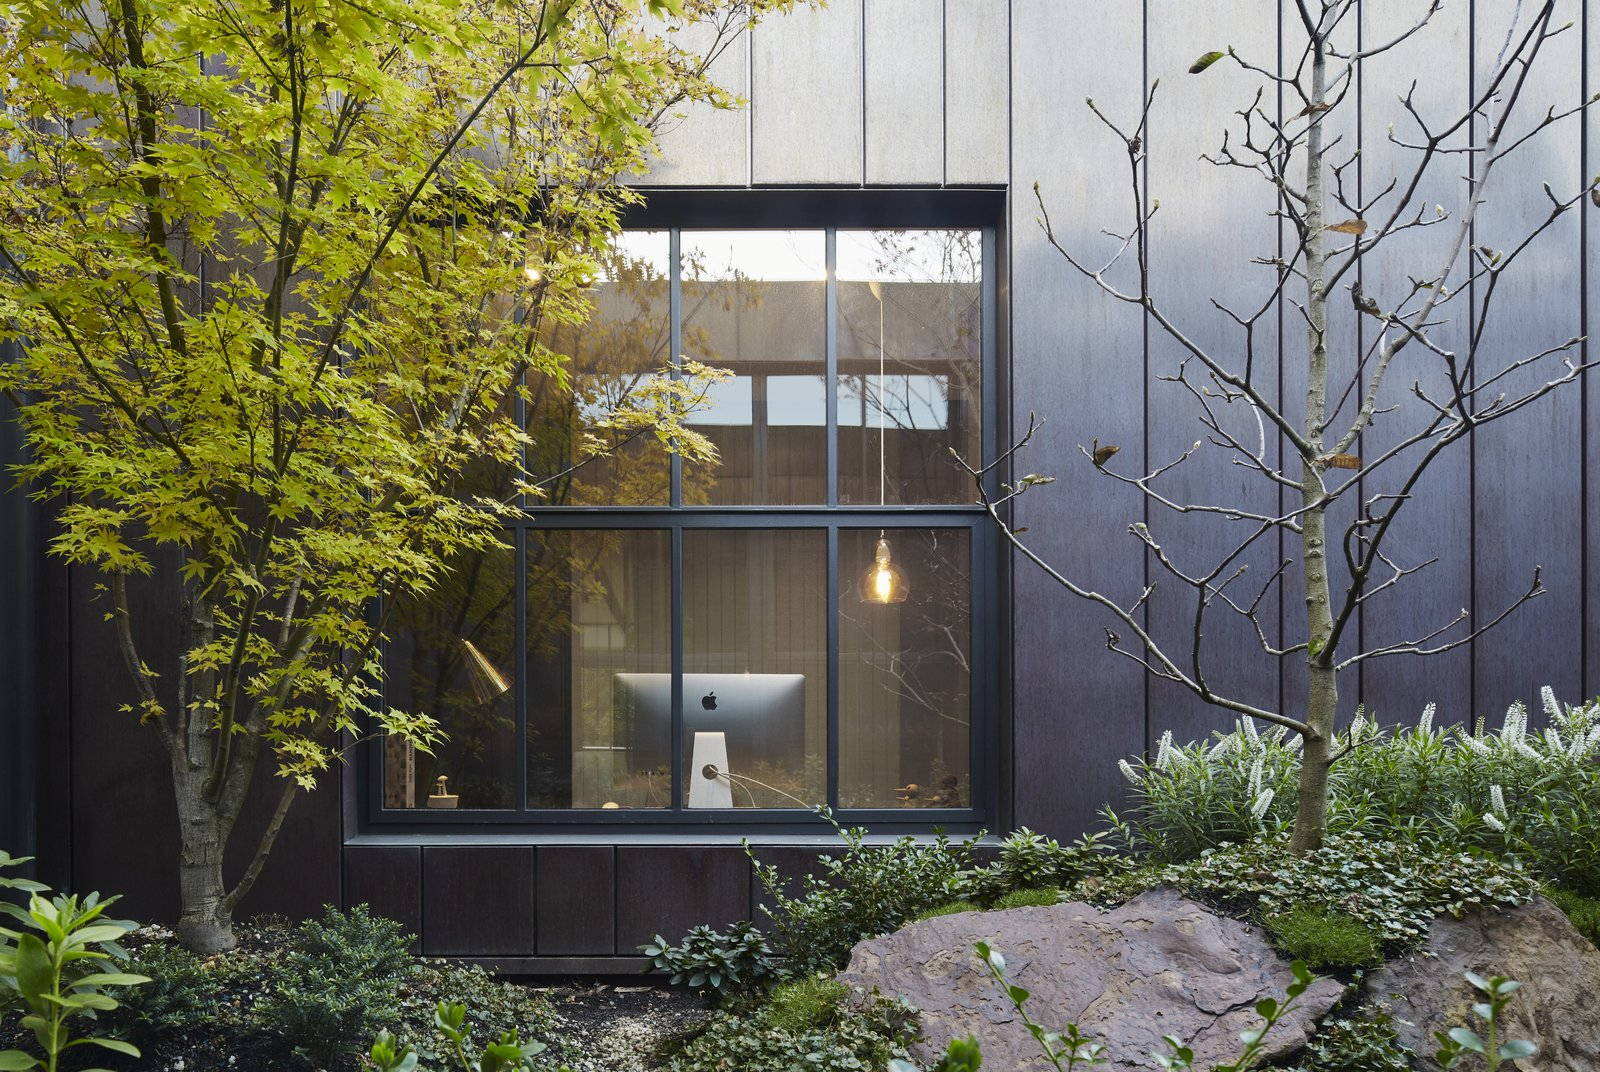 Photo 4 of 11 in See How Sliding-Glass Pavilions Transformed a Renovated Melbourne Home